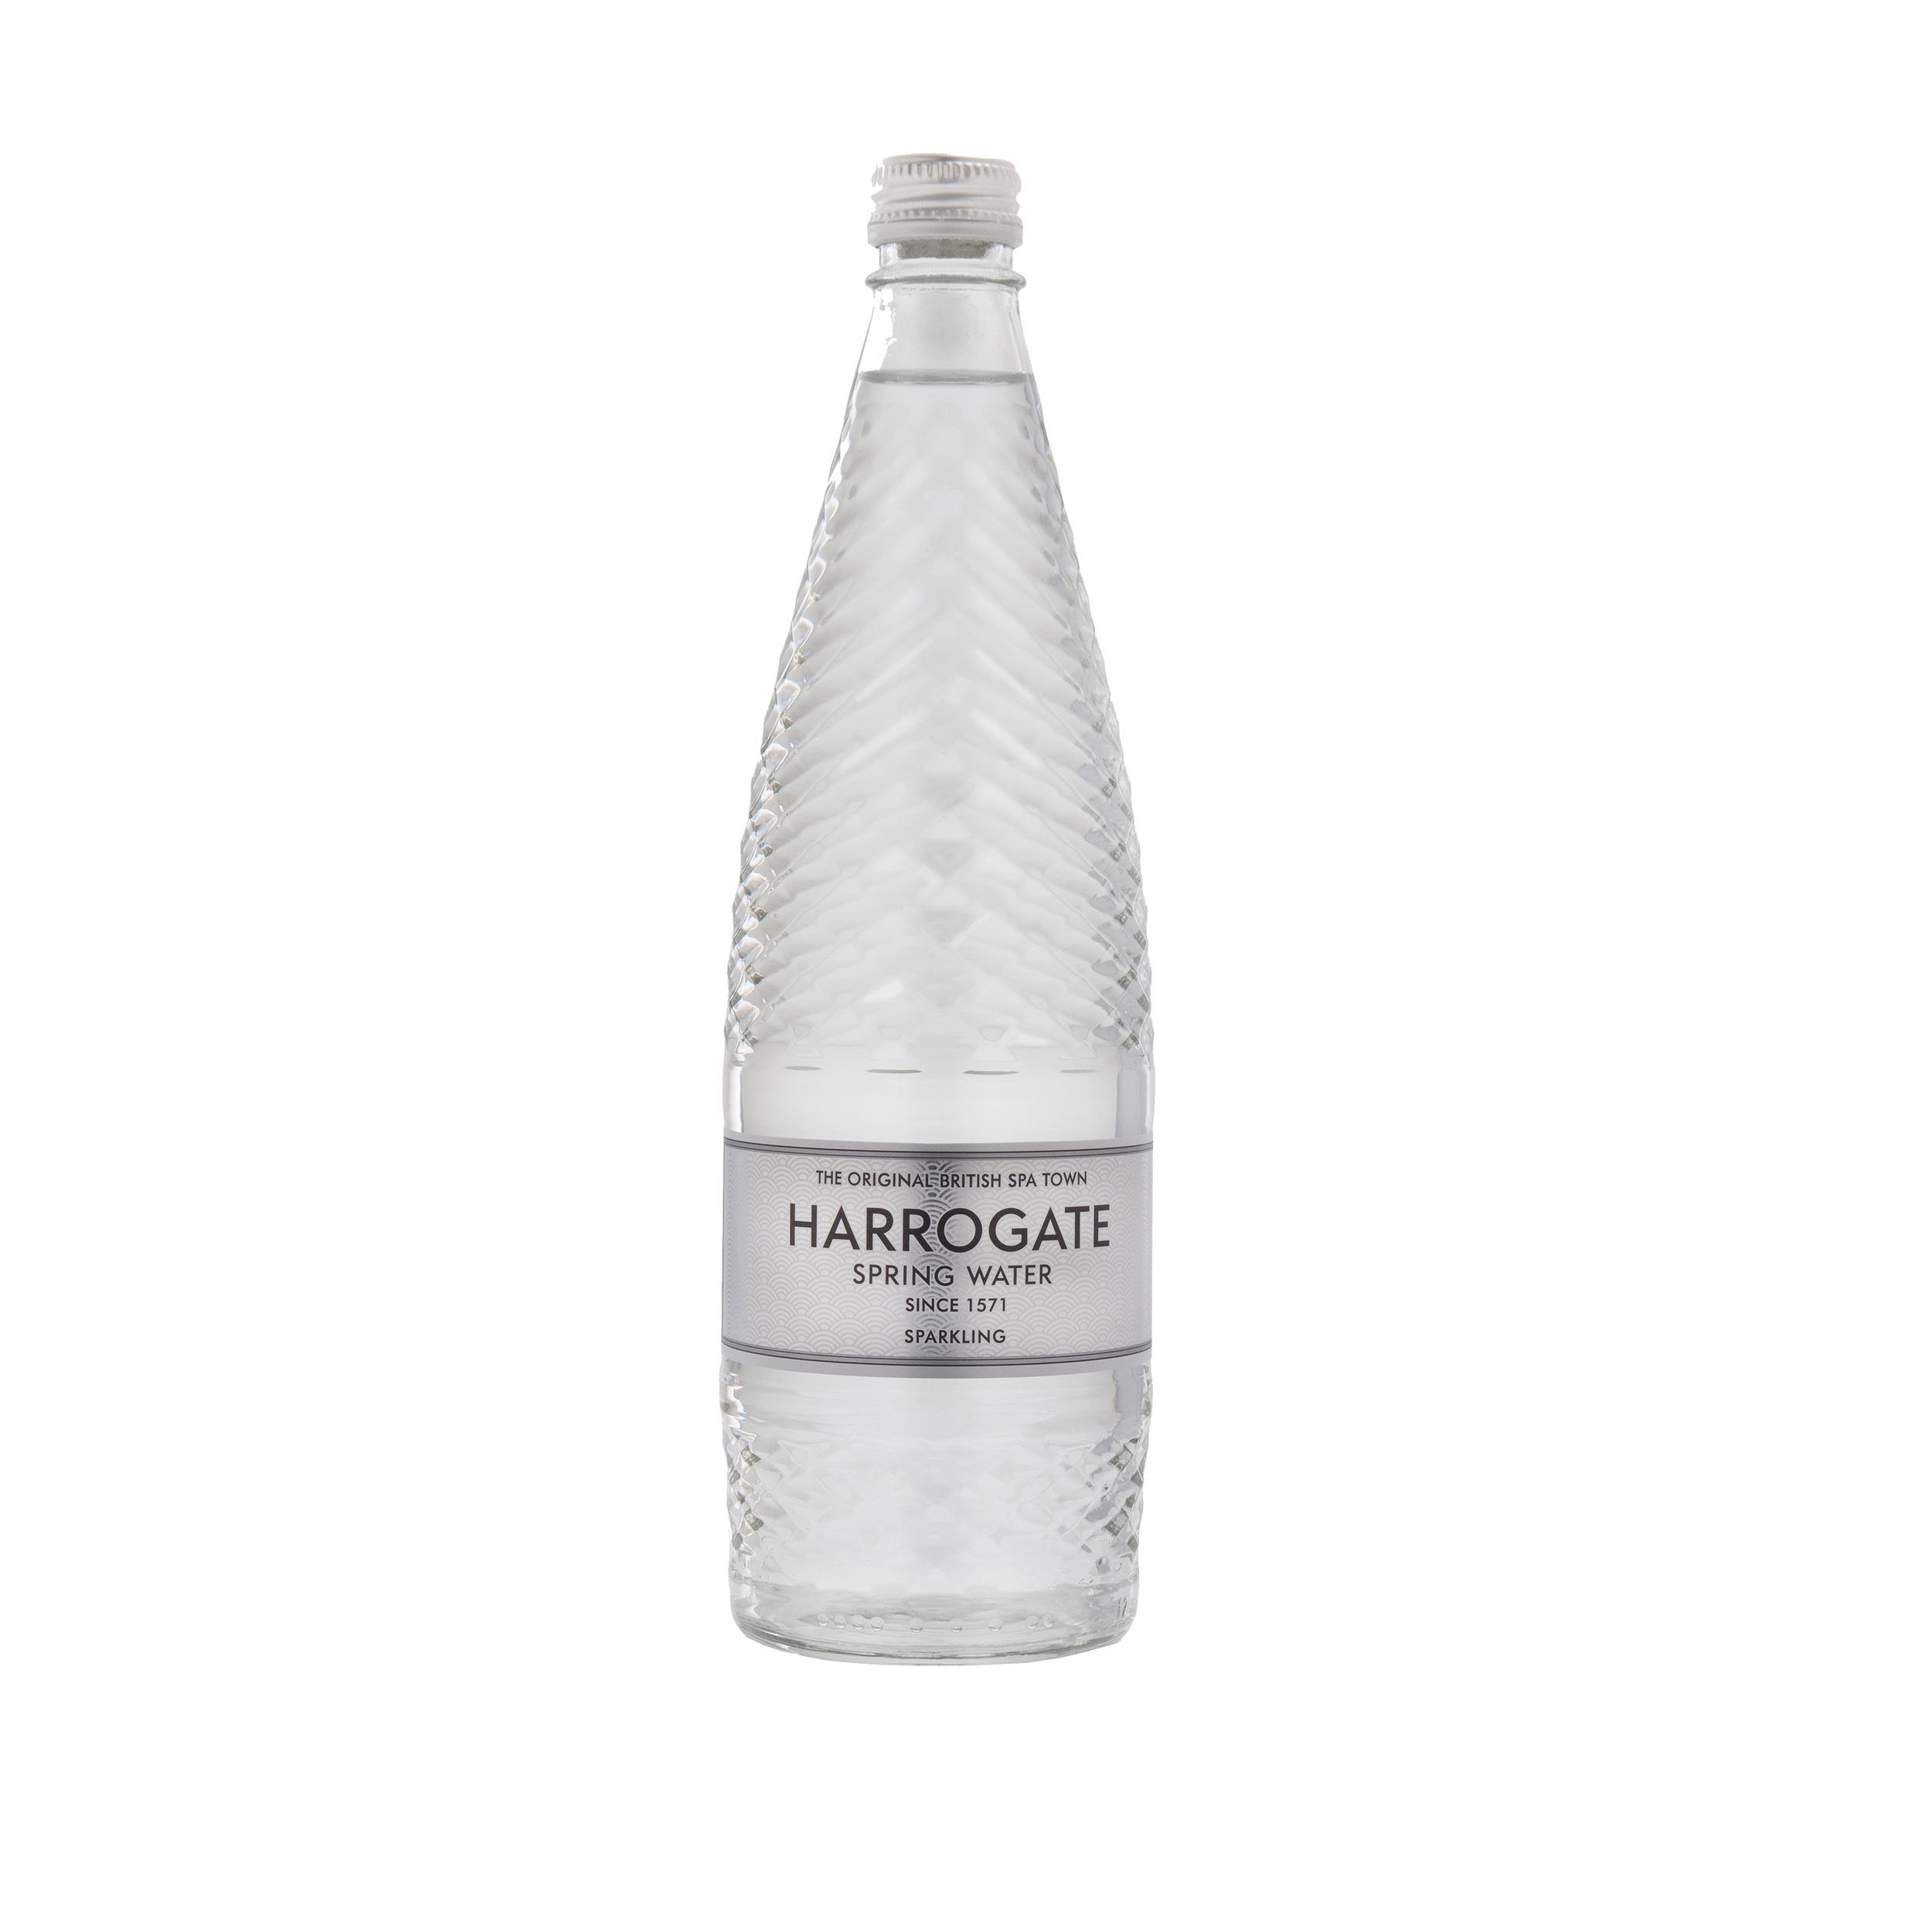 Cold Drinks Harrogate Sparkling Water Glass Bottle 750ml Ref P750122C Pack 12